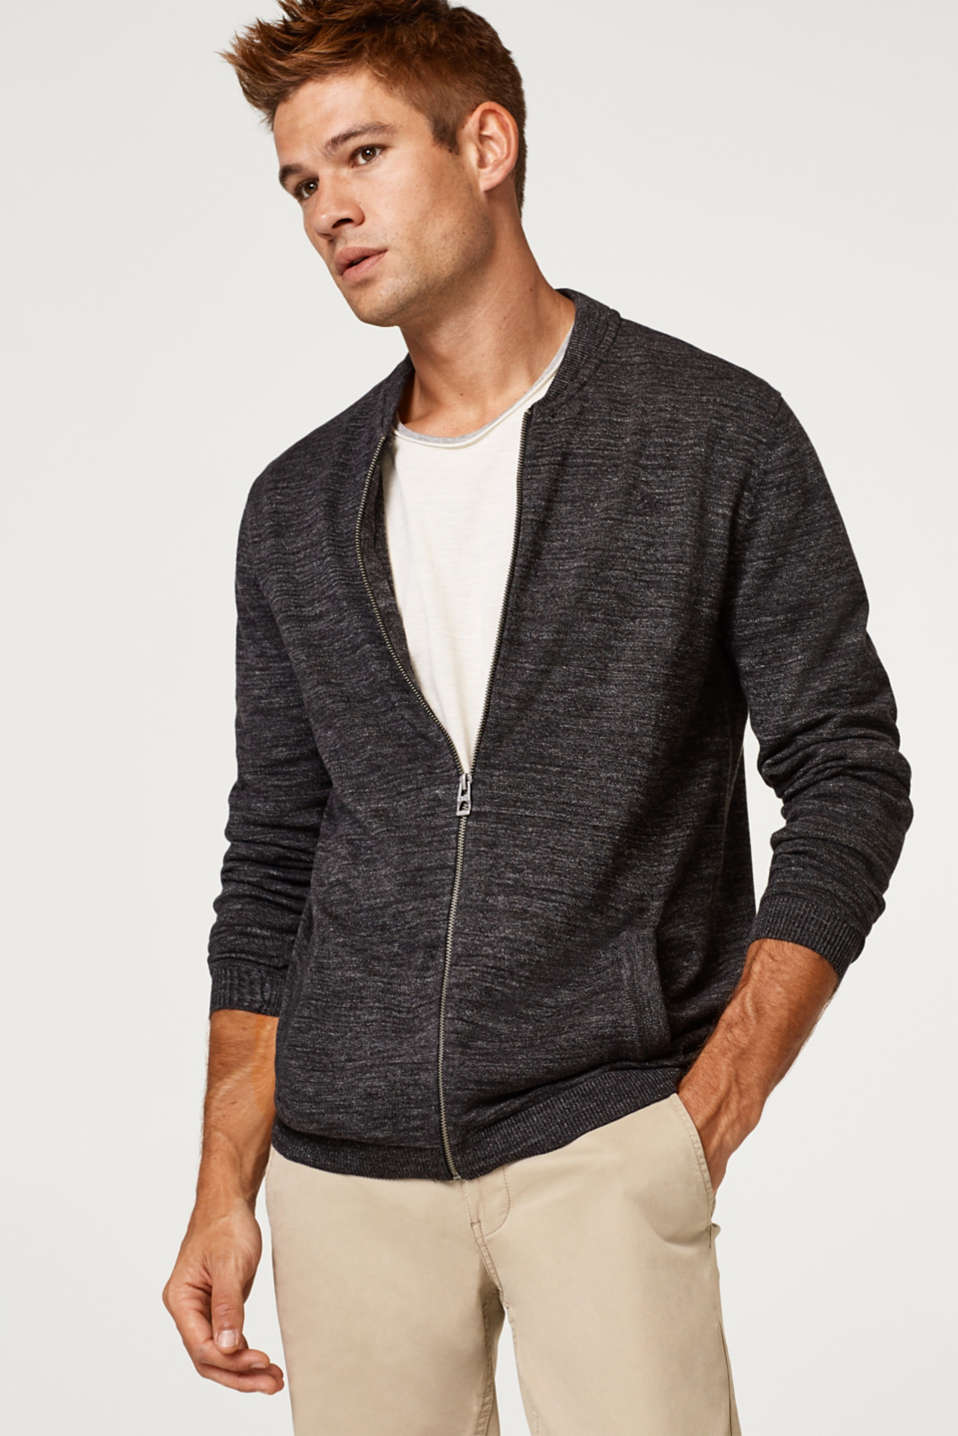 edc - Cardigan with a band collar, 100% cotton